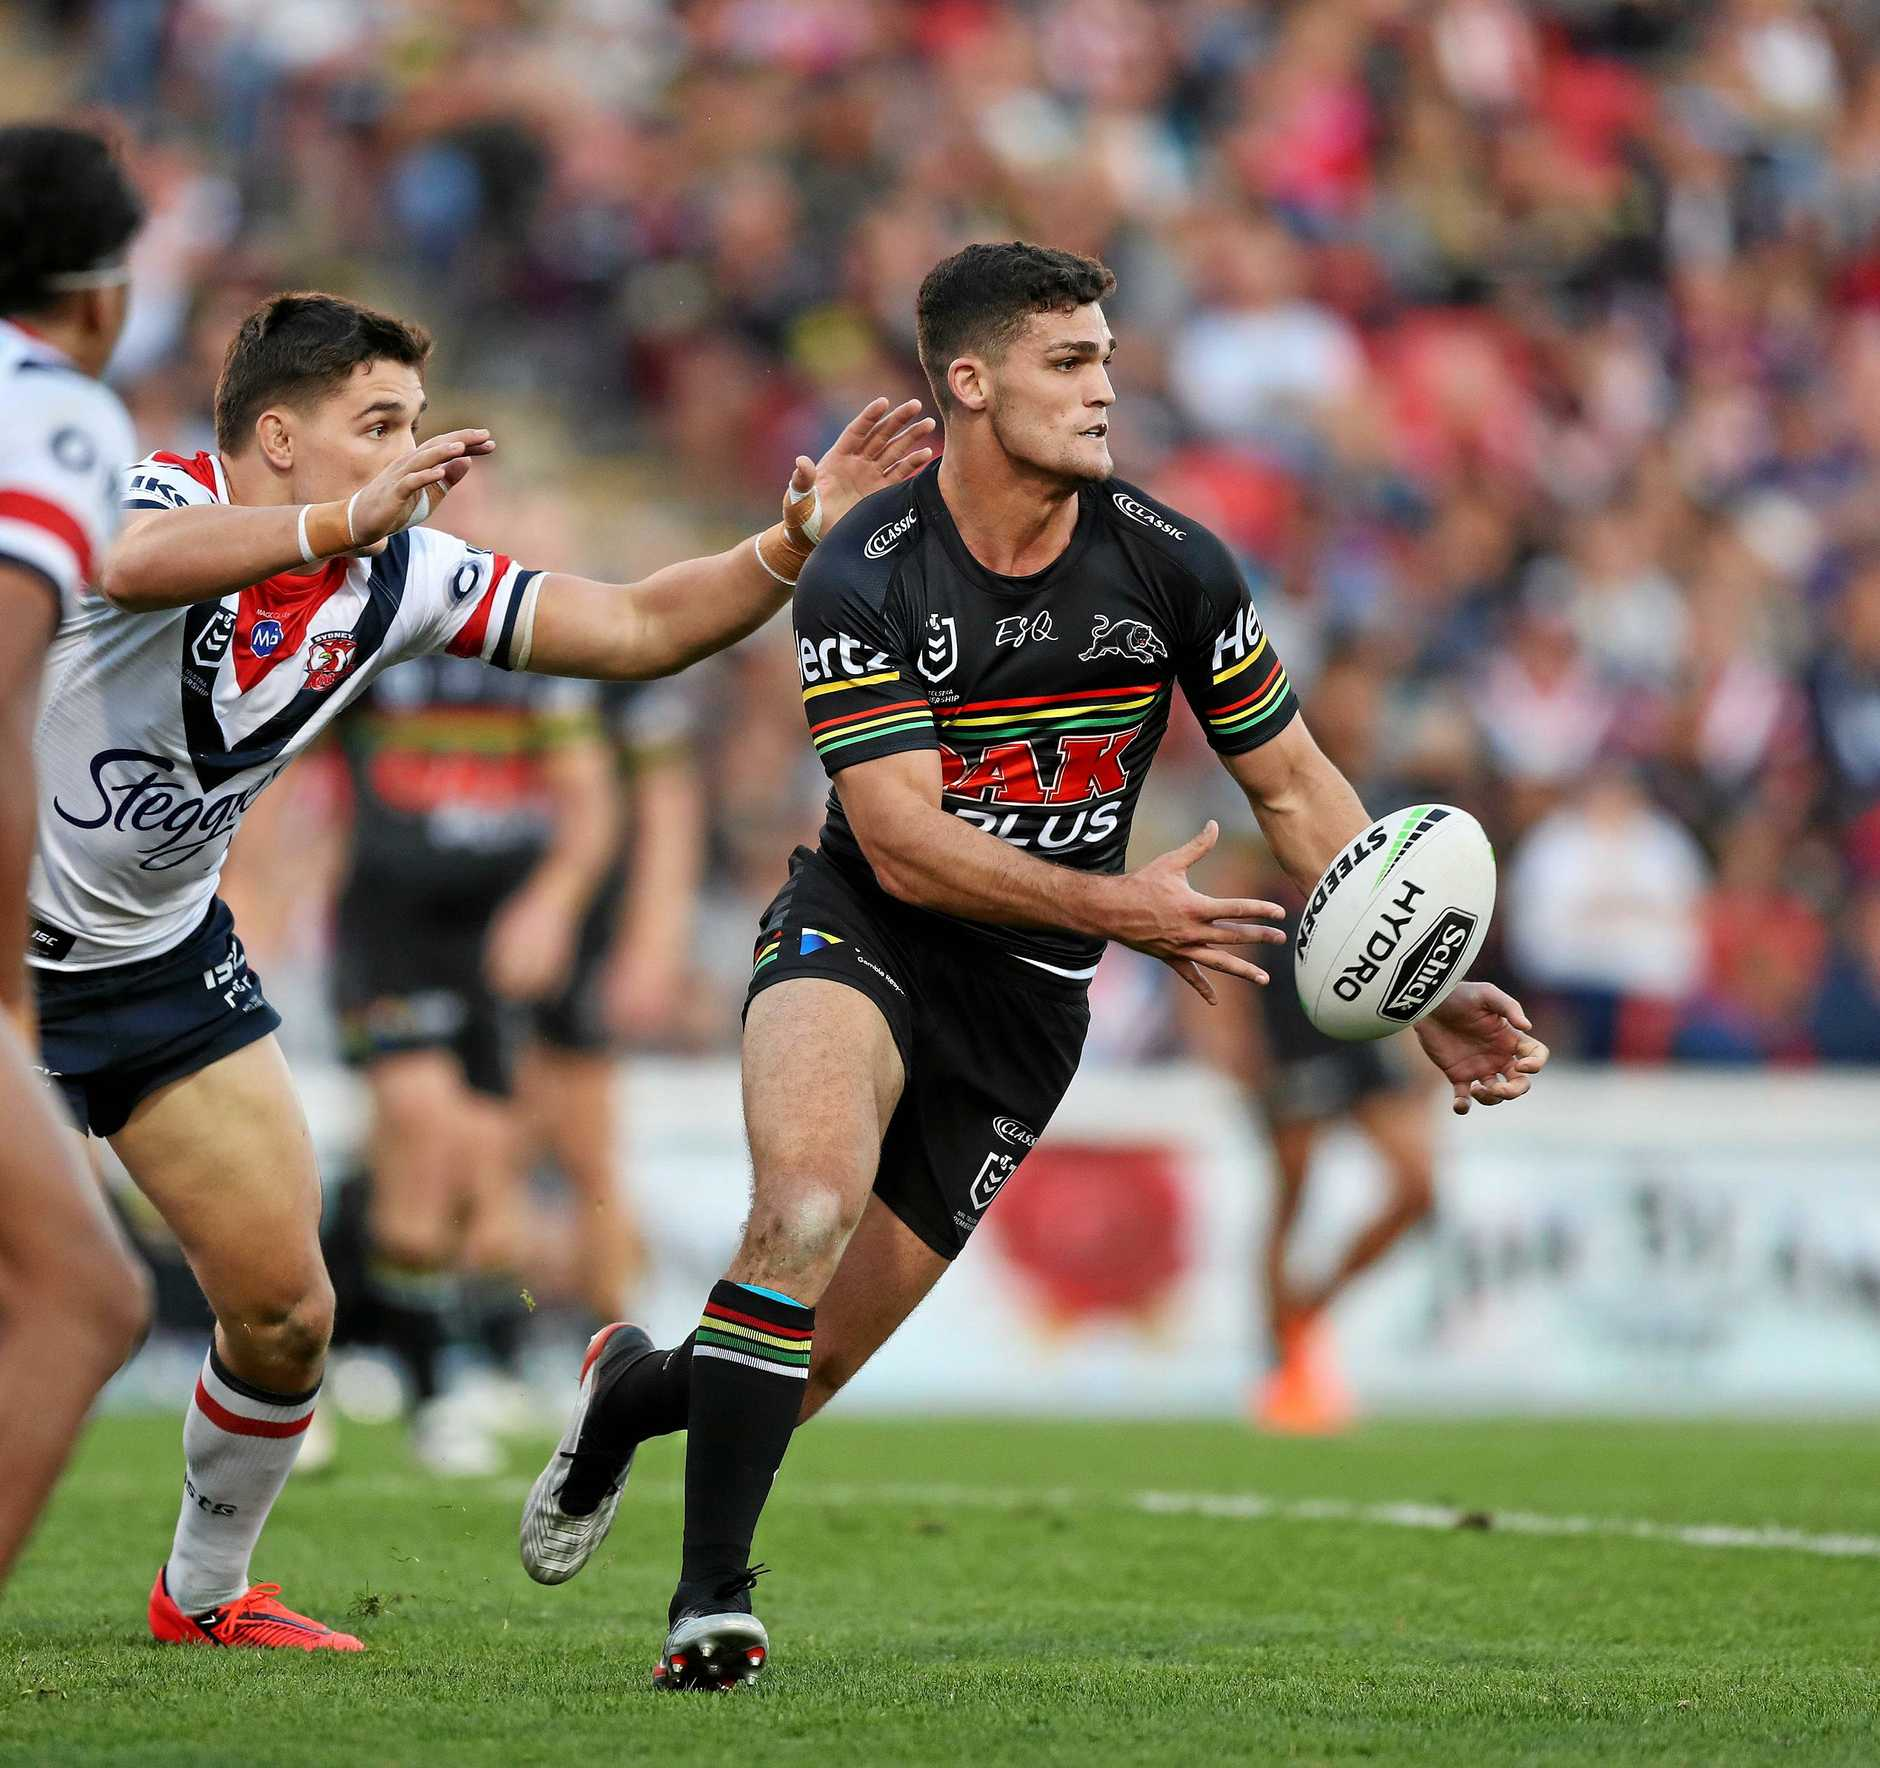 Penrith's Nathan Cleary during the Penrith v Sydney Roosters NRL match at Penrith Stadium, Sydney. Picture: Brett Costello